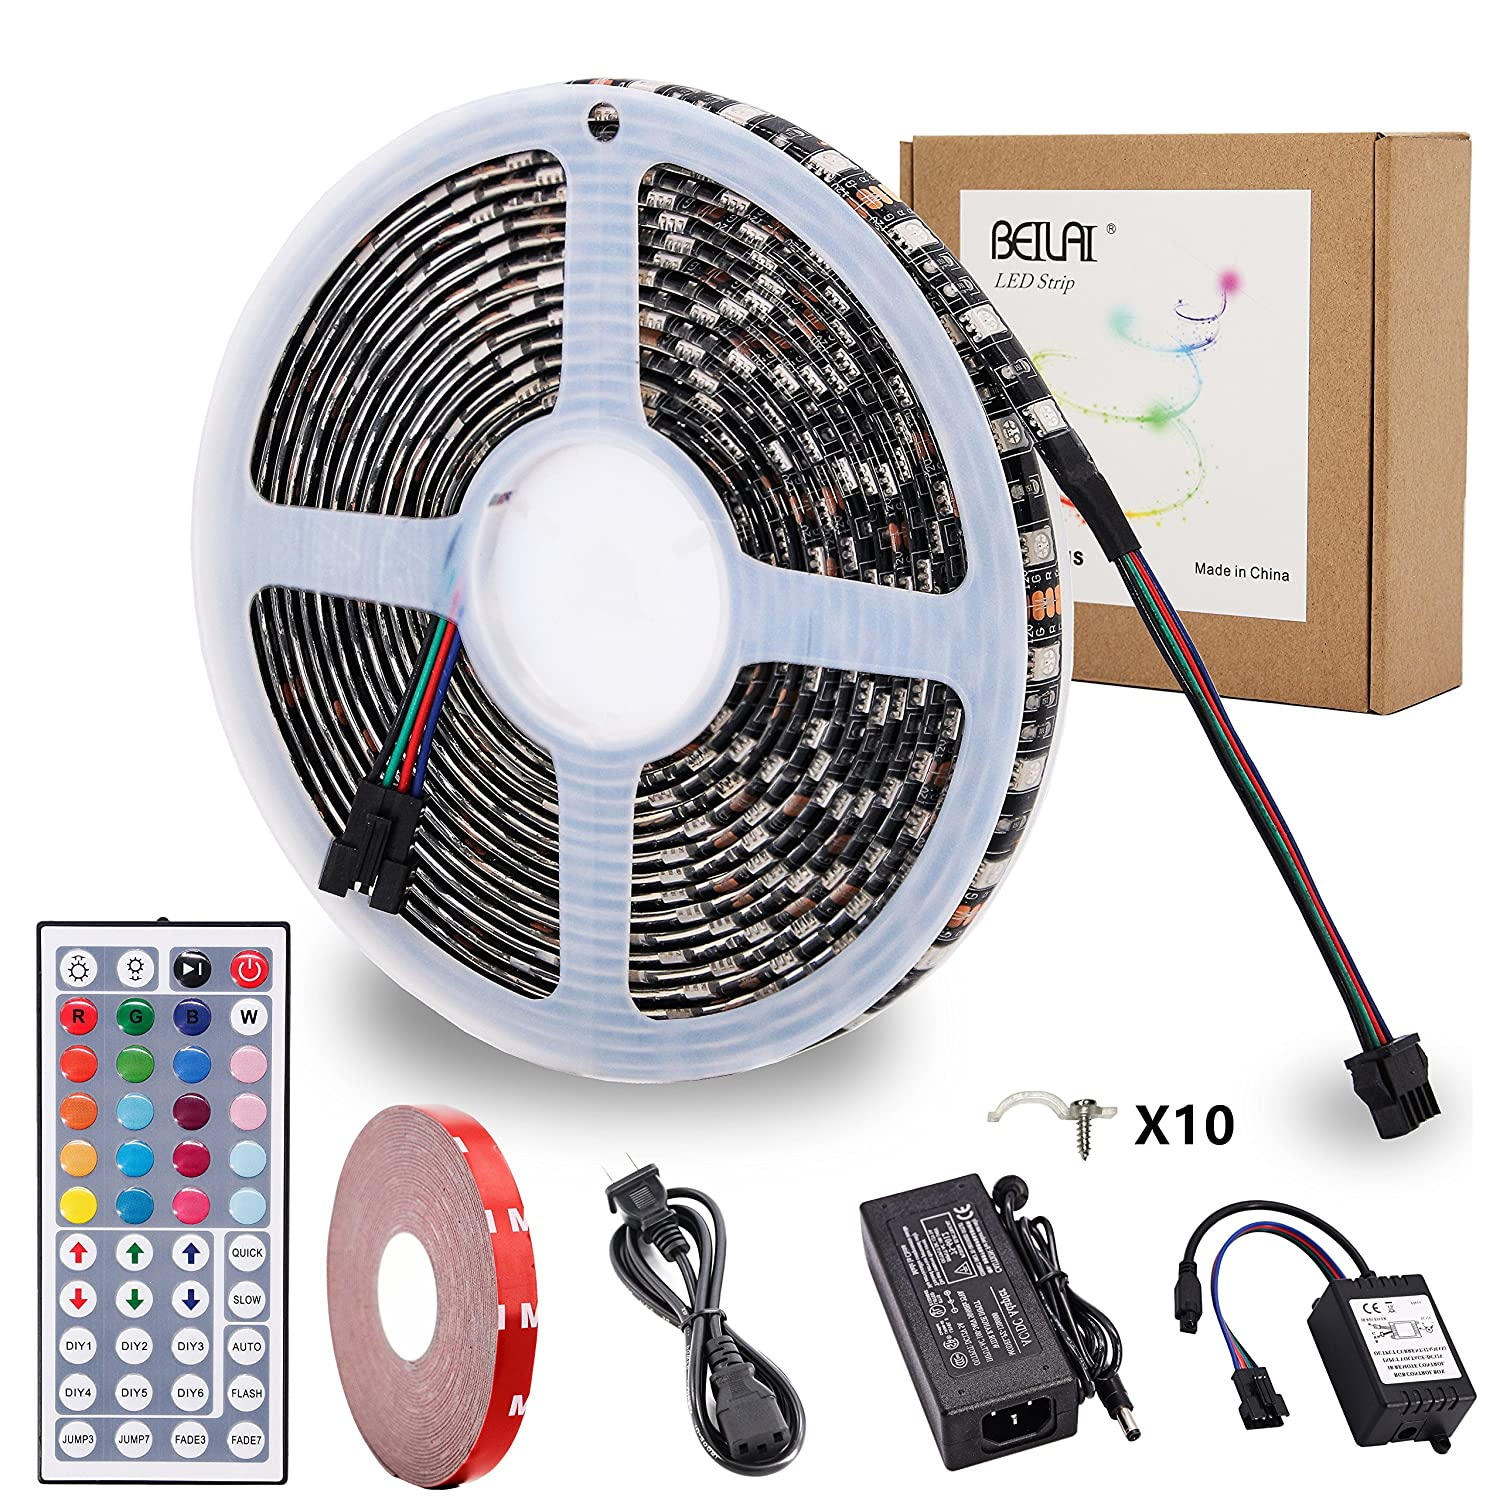 Rgb Led Strip Lights Kitbeilai Light Quick Adapter Wiring Connector Multi Color 5050 Smd Waterproof Dc 12v Flexible Neon Tape 164 Ft 5m 300leds With 44key Controller For